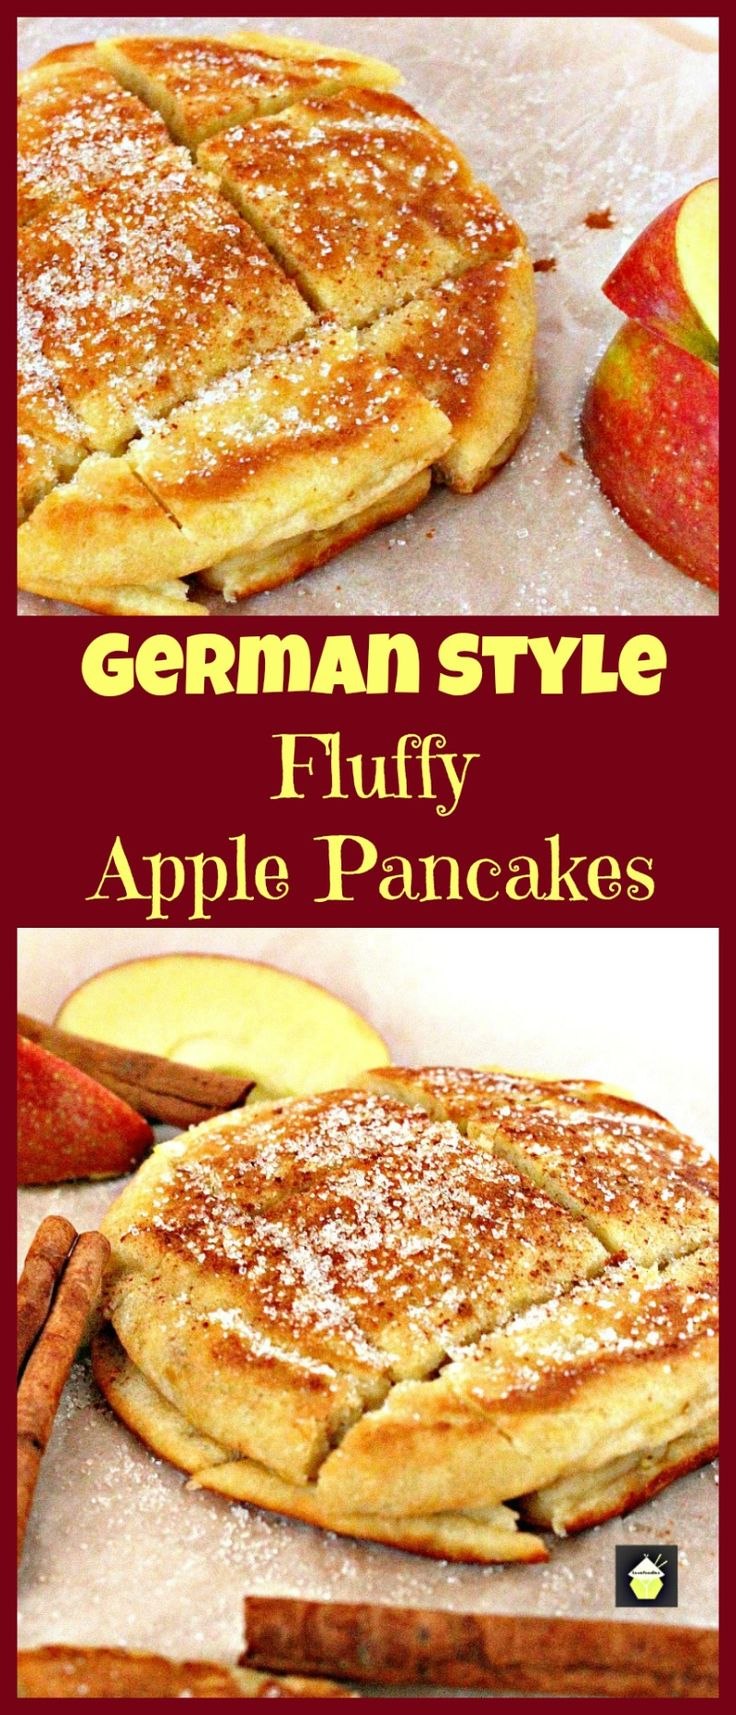 German Style Fluffy Apple Pancakes. Delicious, quick and easy recipe and these are certainly fluffy! Serve warm with a sprinkling of sugar and a dash of cinnamon.